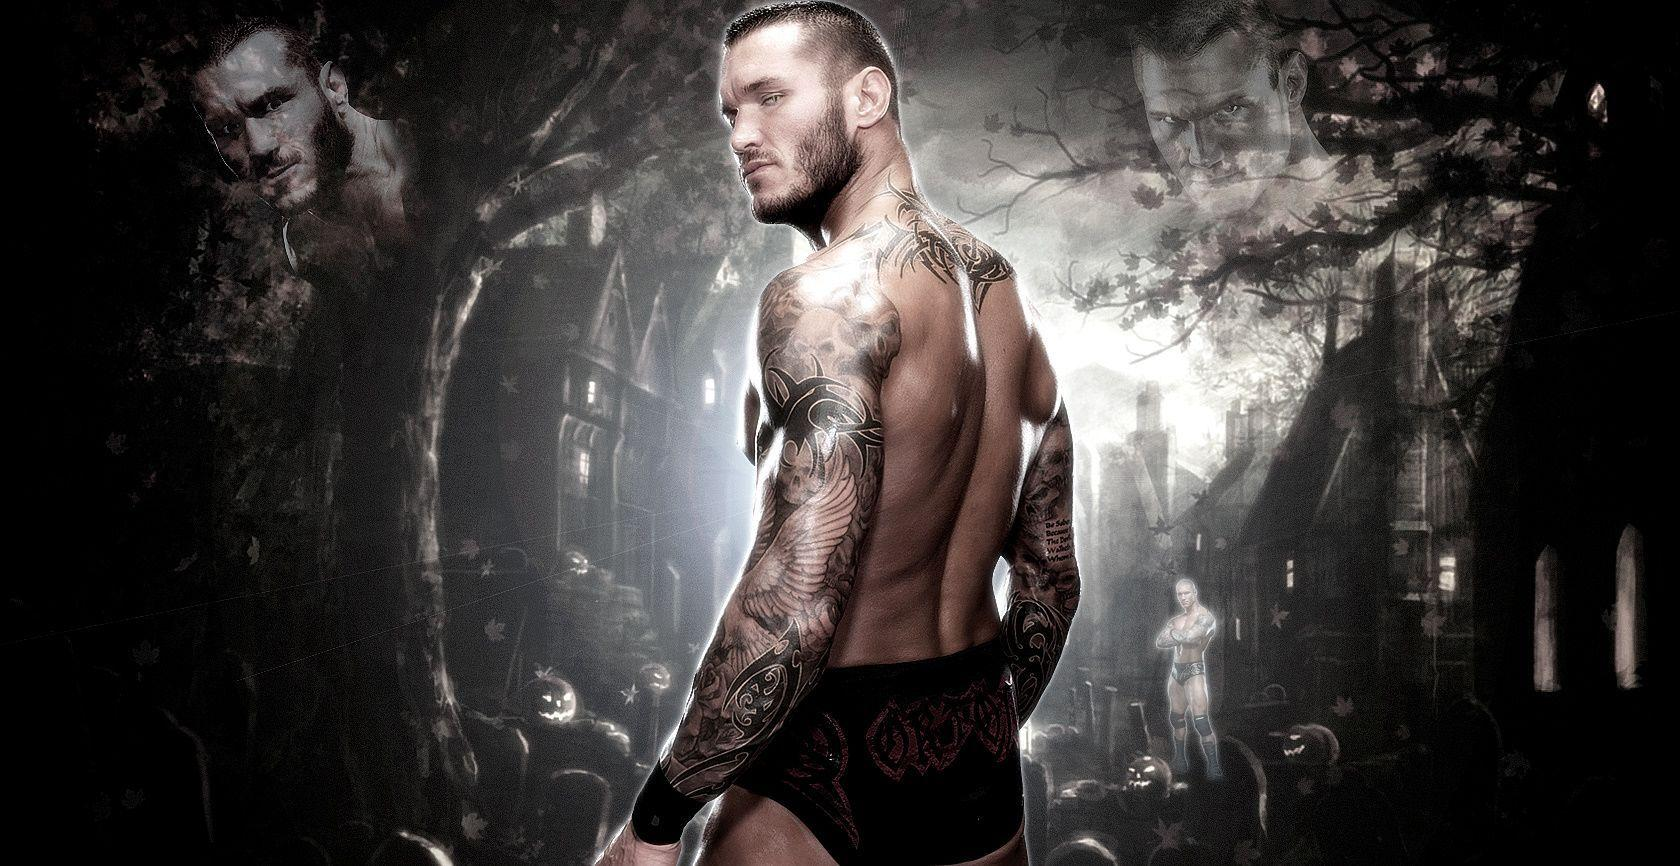 Randy Orton 2016 Wallpapers Viper - Wallpaper Cave